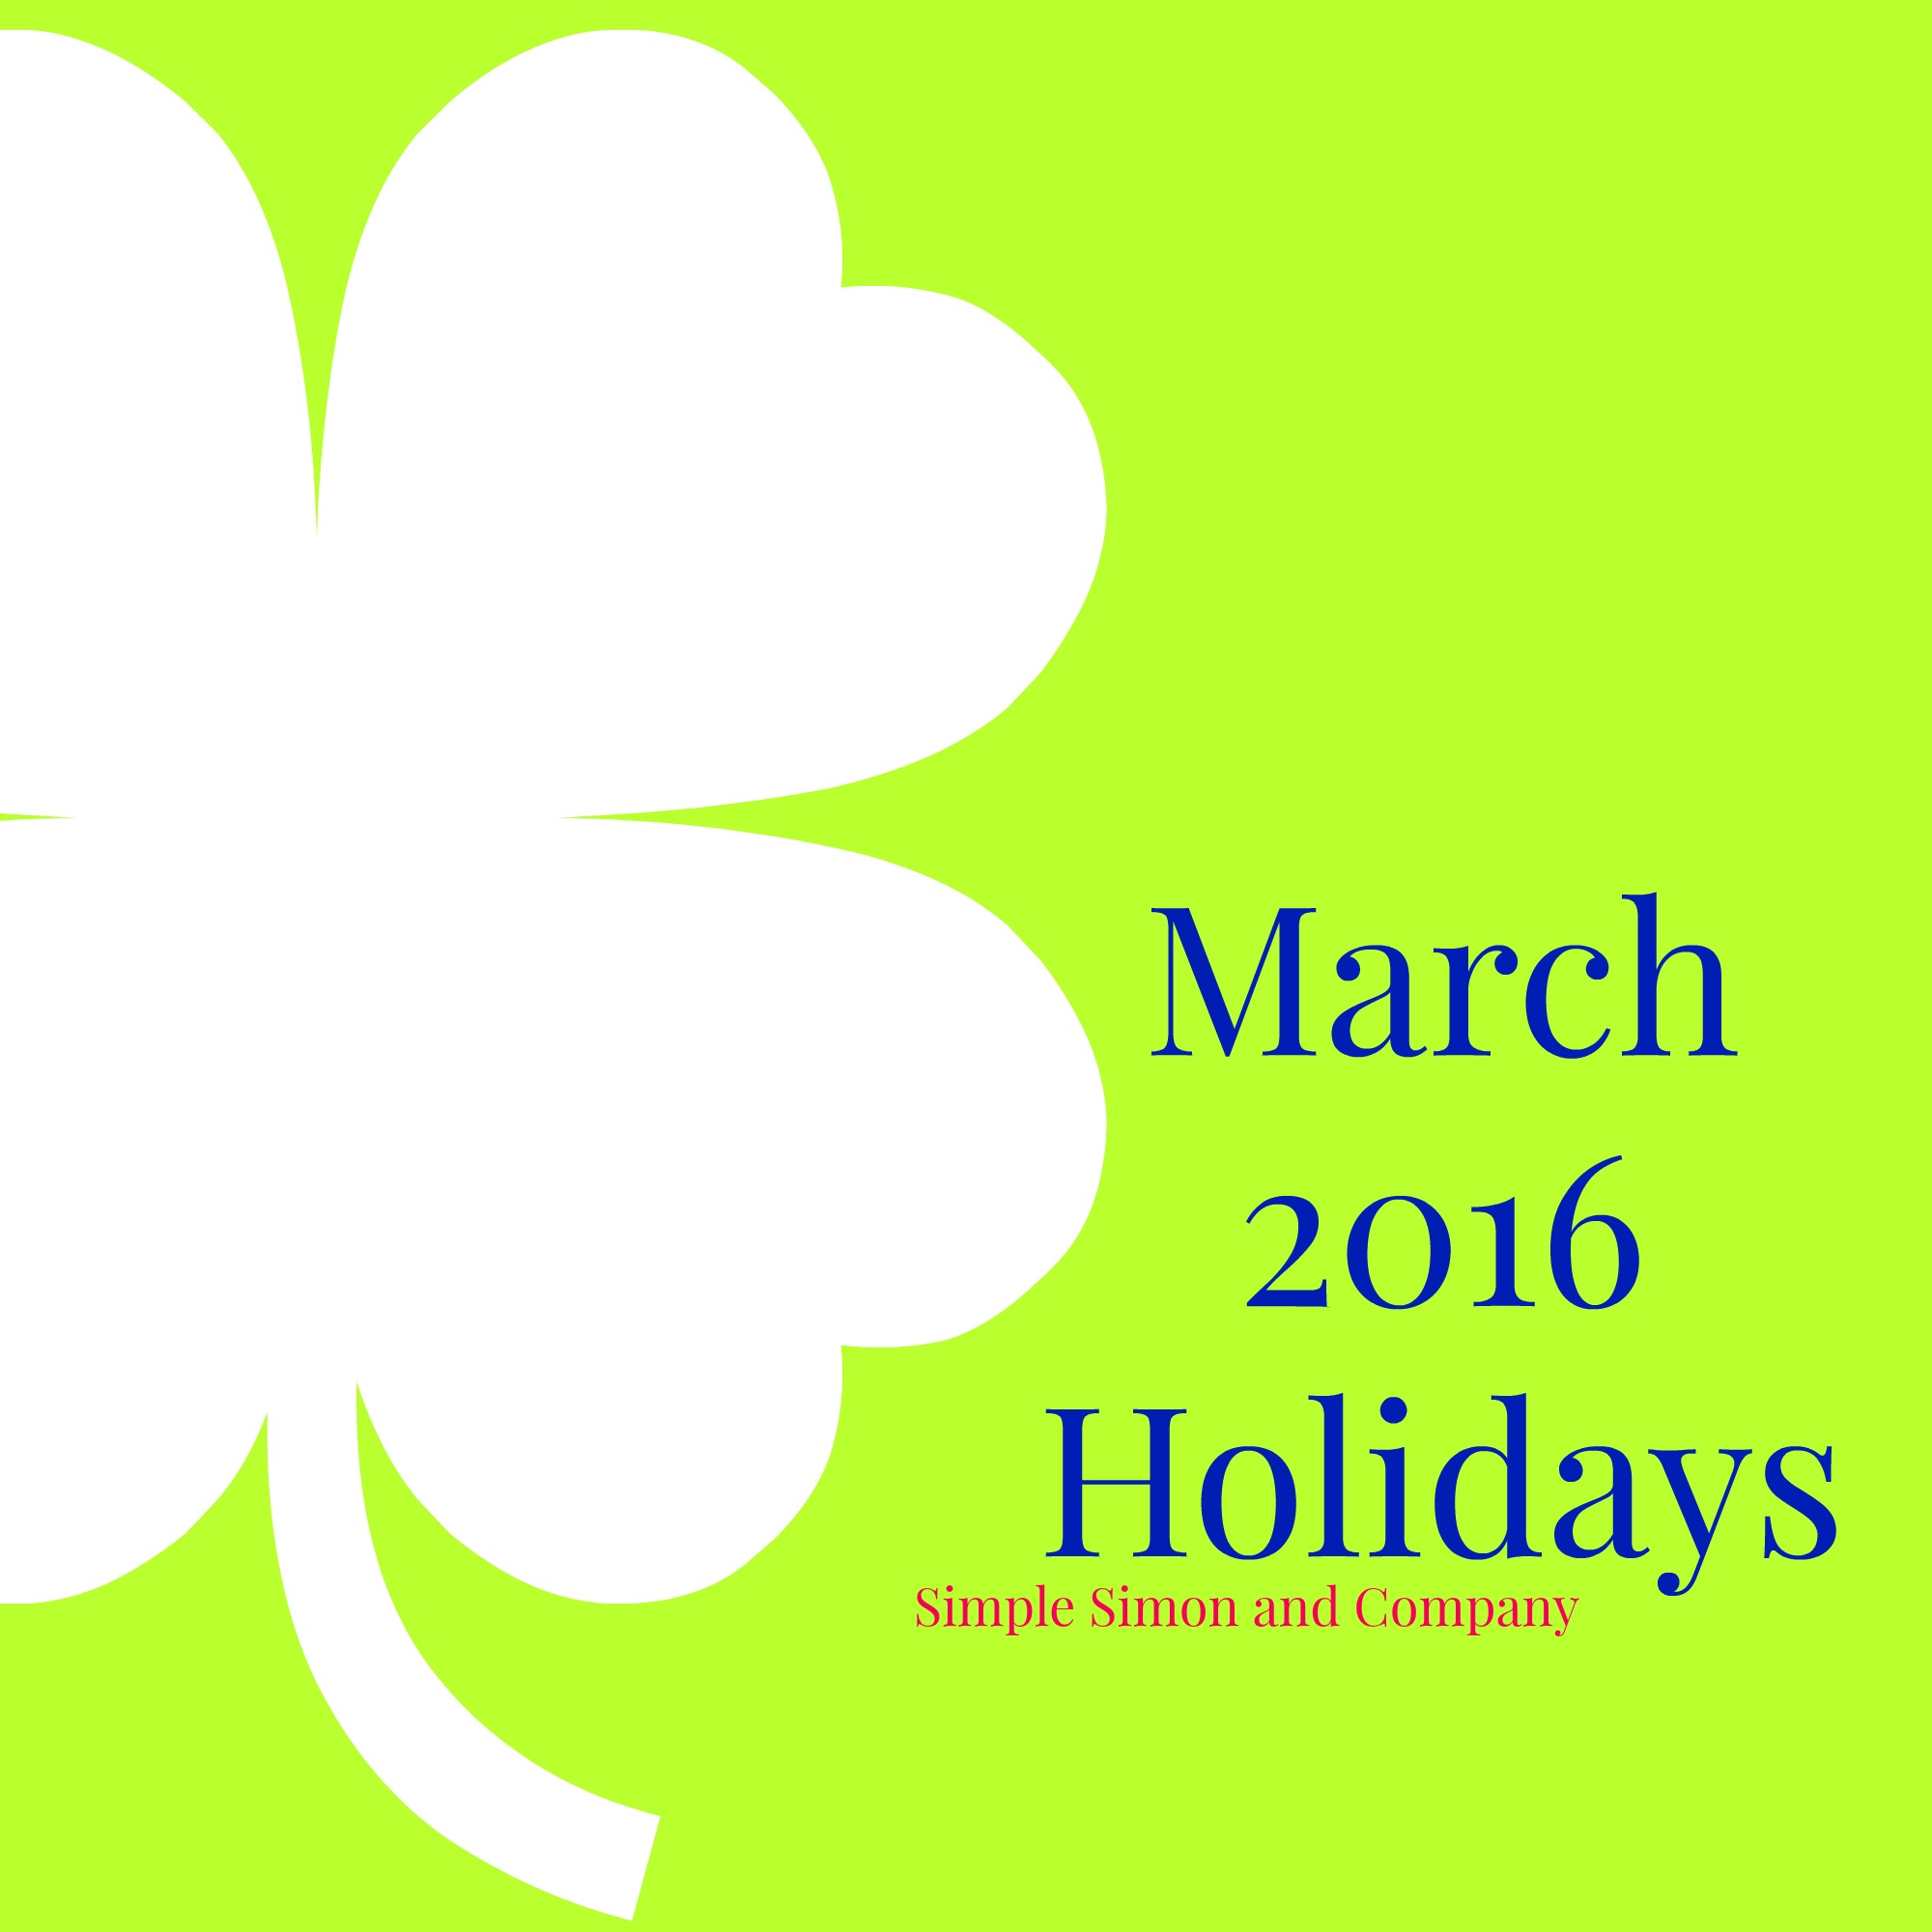 March Holidays 2016